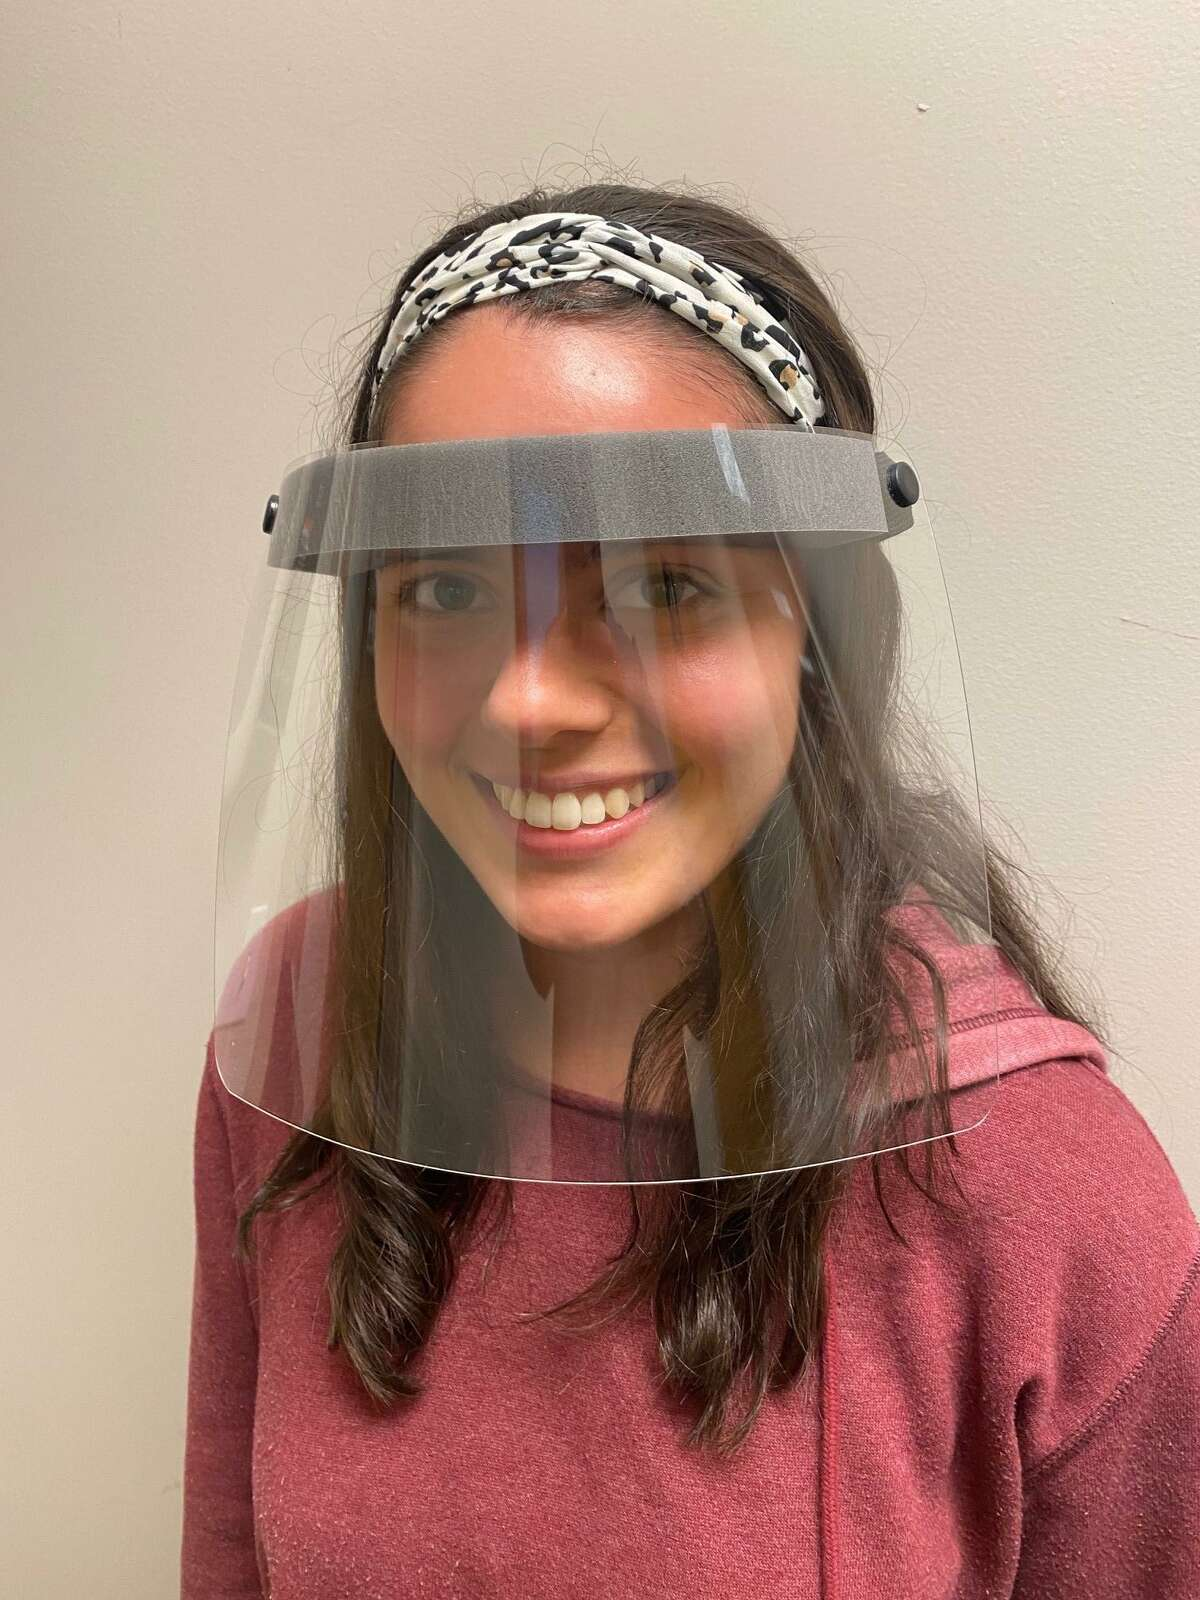 Shelton-based Modern Plastics, under the guidance of its president, Bing Carbone, donated 650 plastic face mask shields to Shelton school district in August.